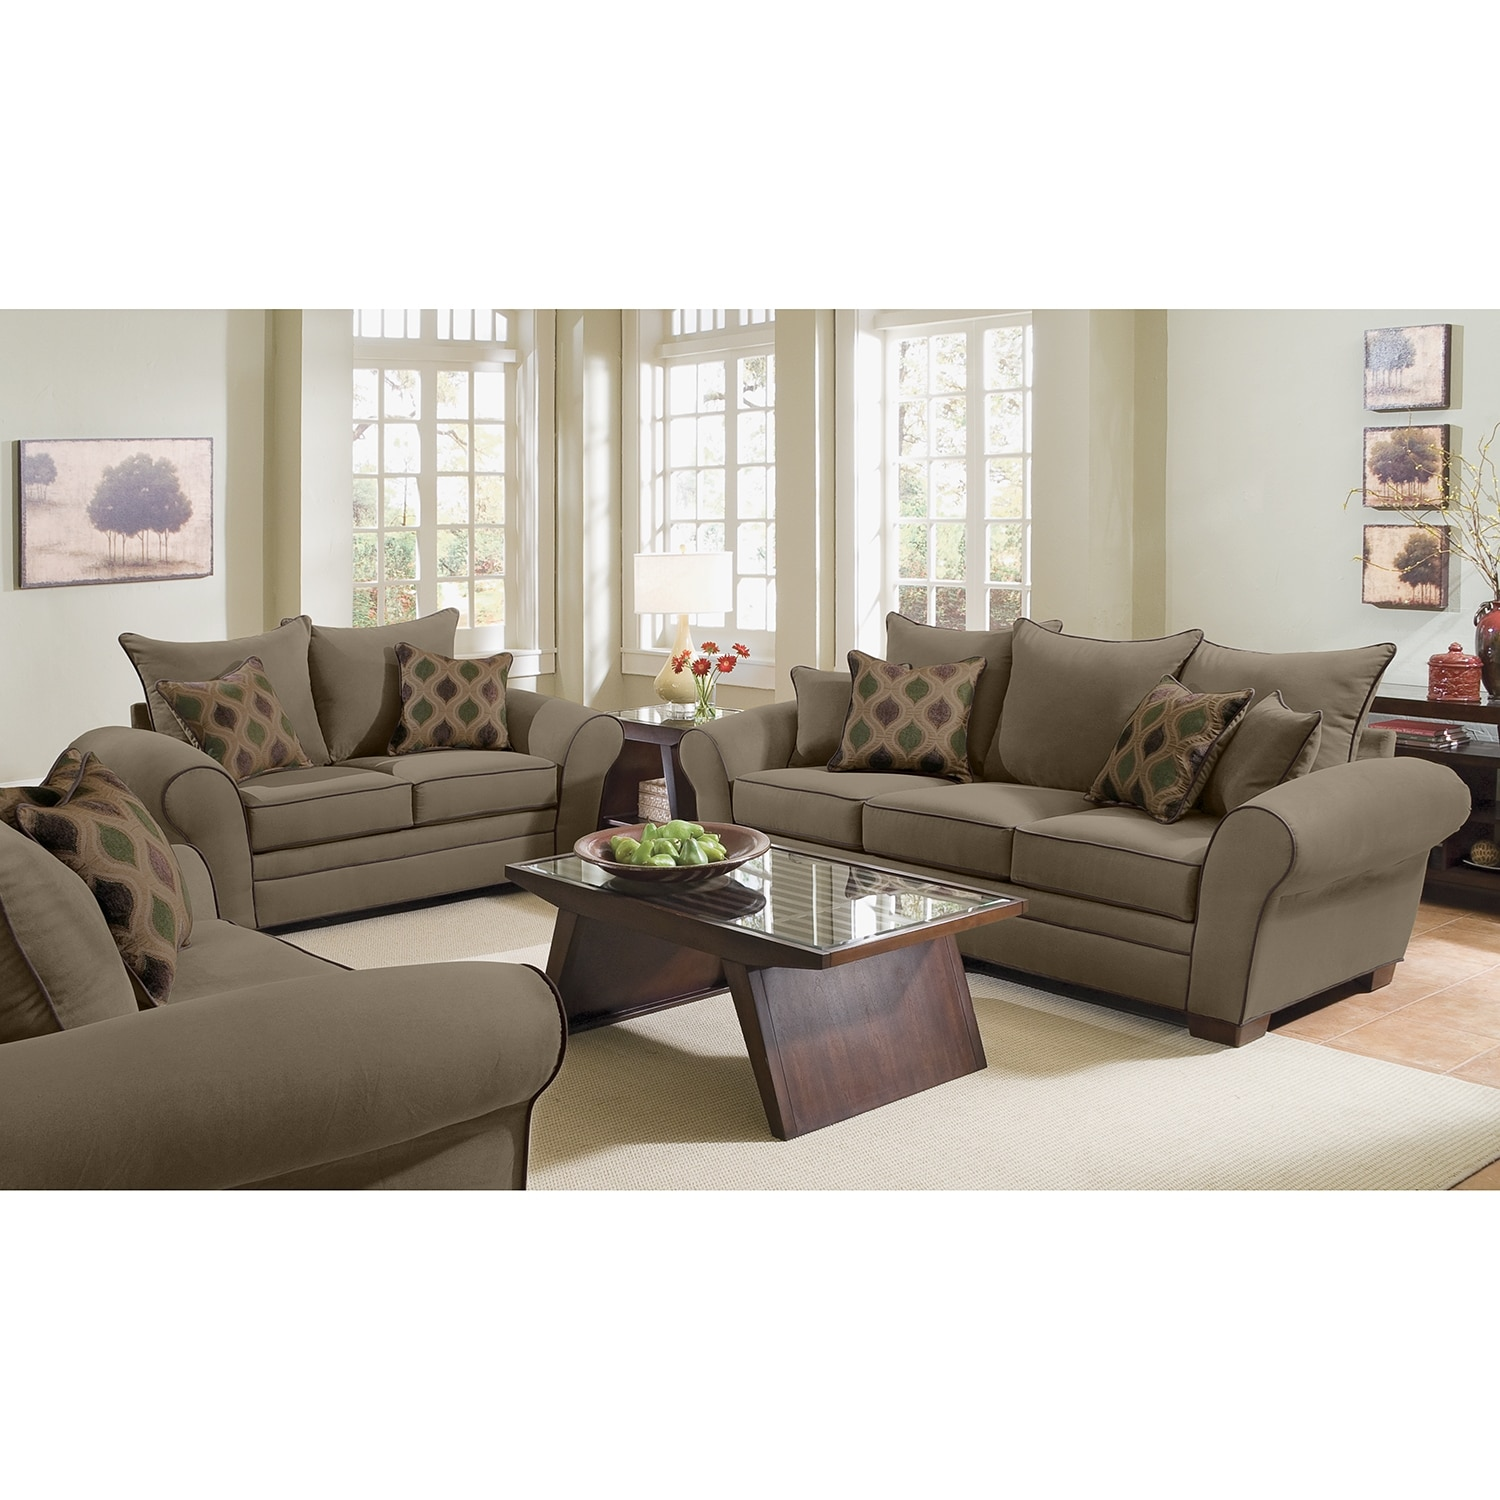 Living Room Furniture - Rendezvous 2 Pc. Living Room